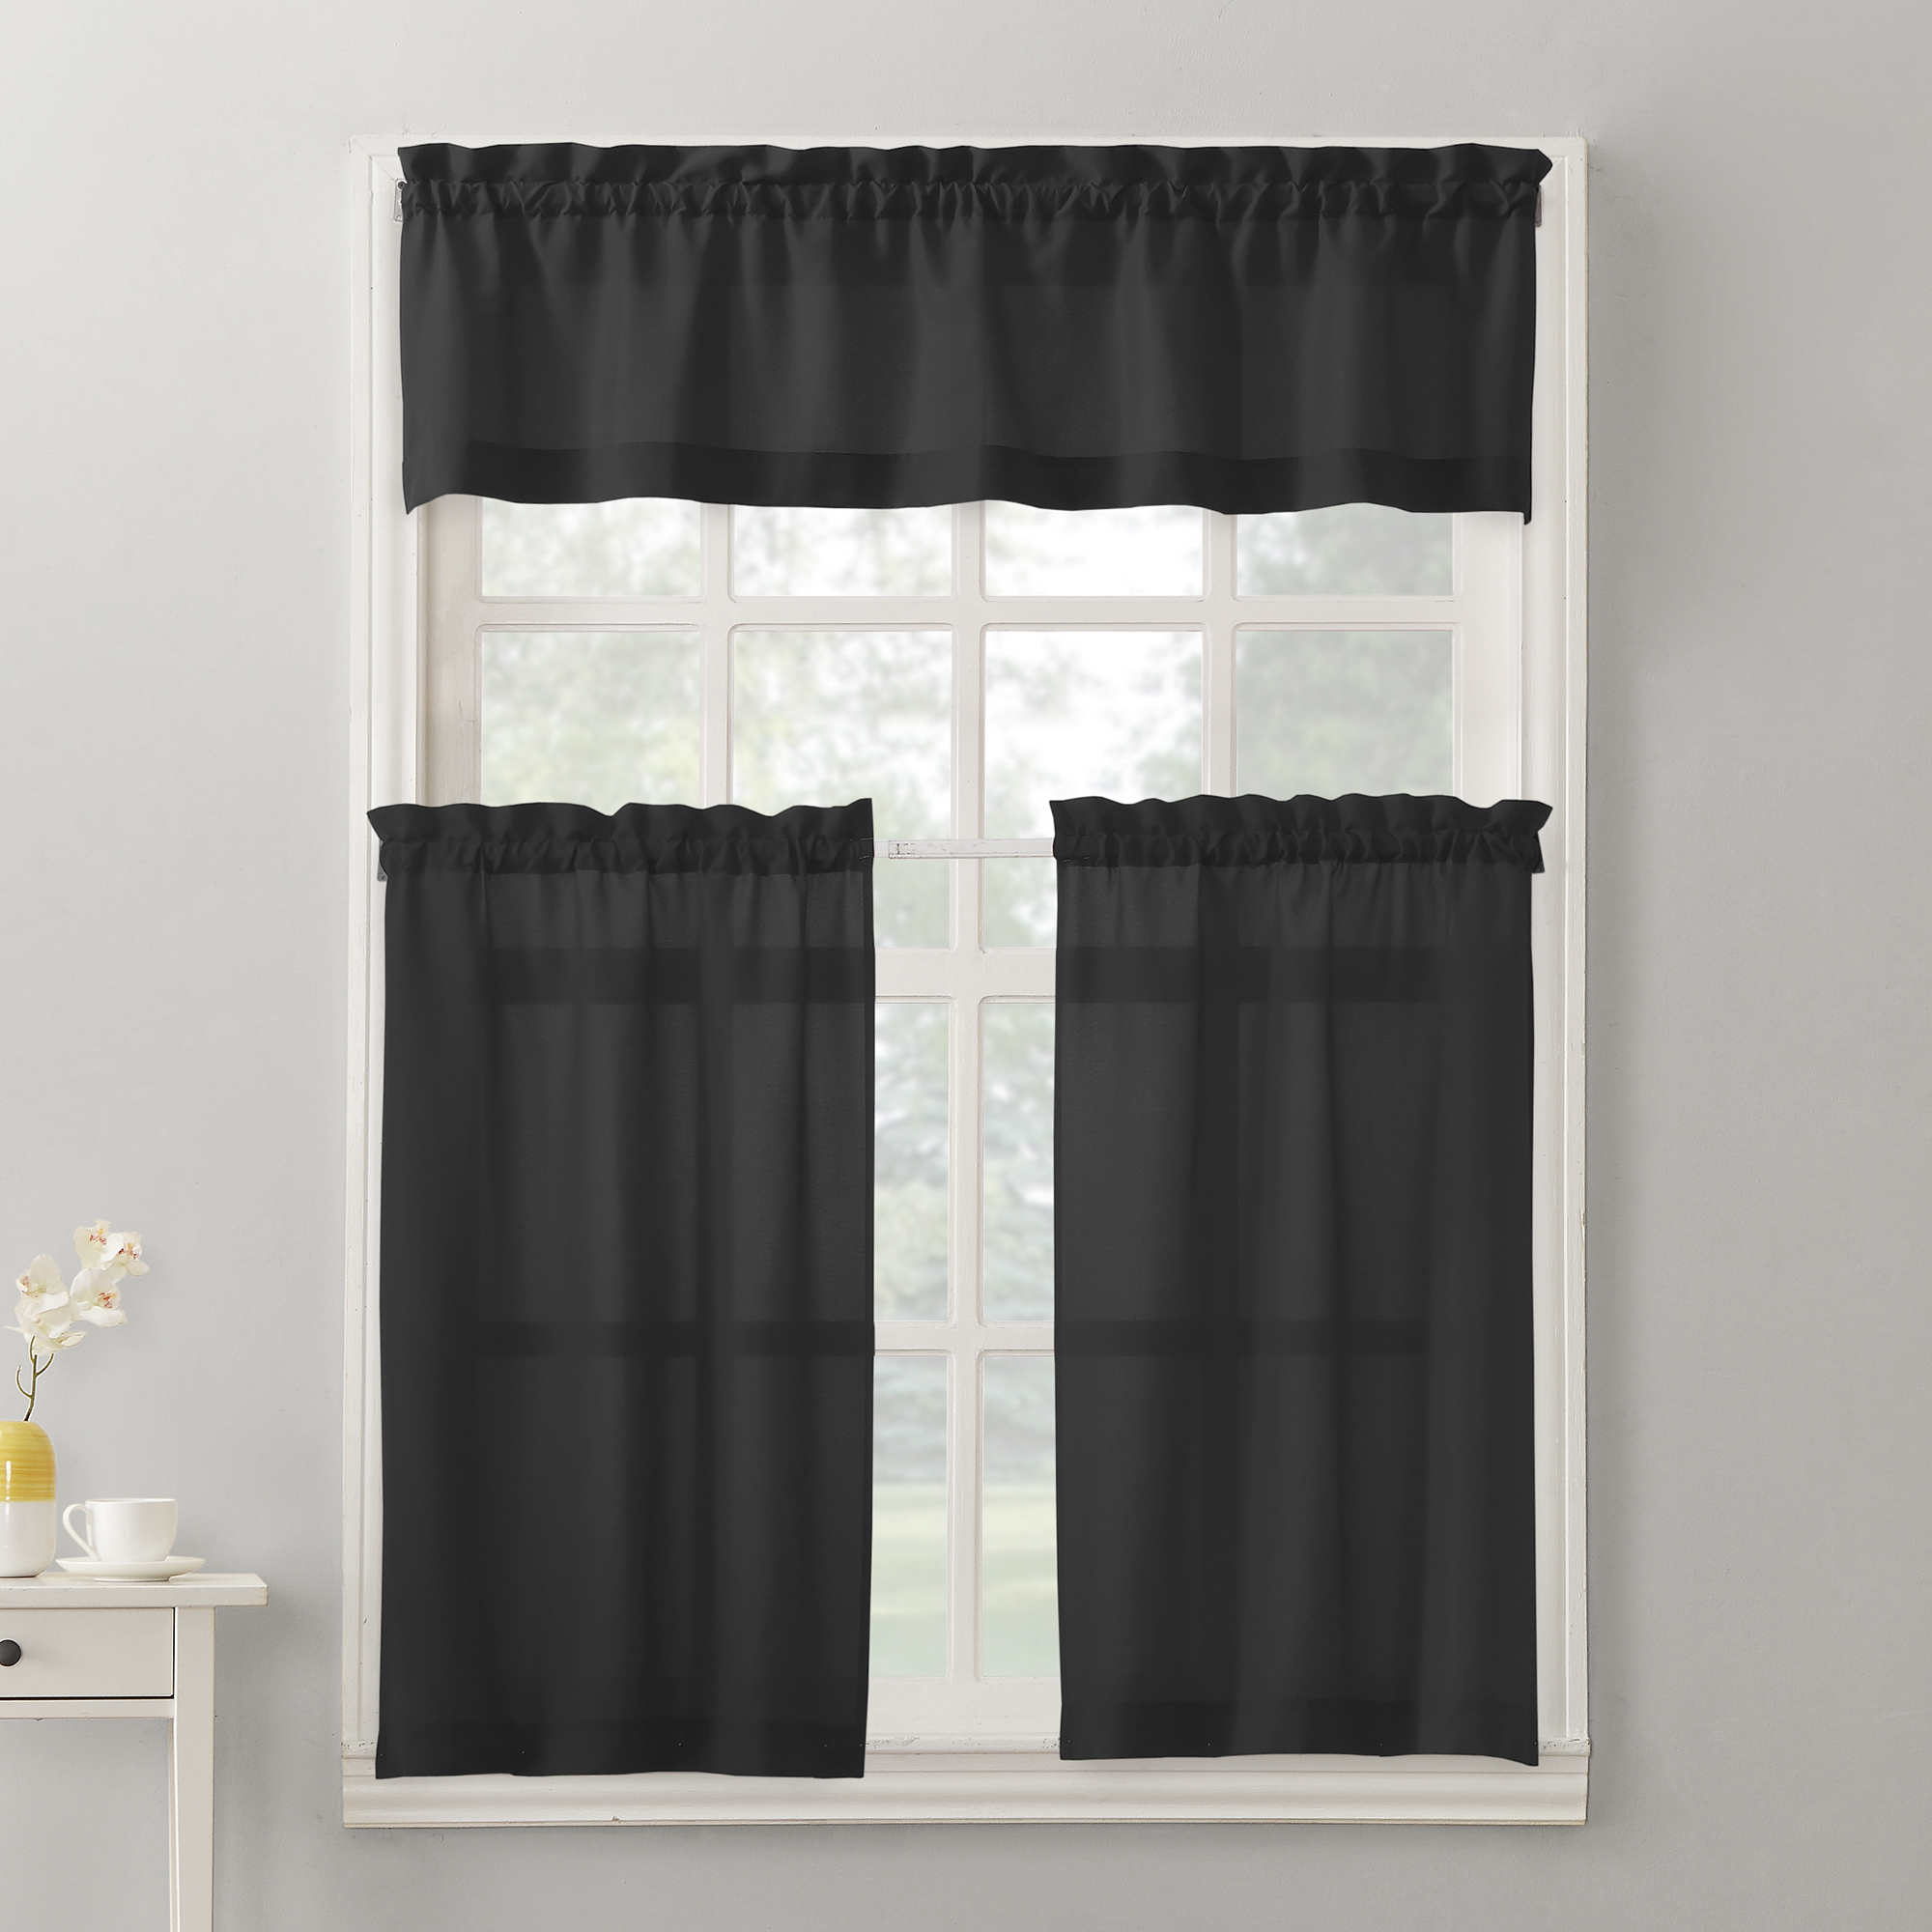 Well Liked Barnyard Window Curtain Tier Pair And Valance Sets Regarding Mainstays Solid 3 Piece Kitchen Curtain Tier And Valance Set (View 15 of 20)